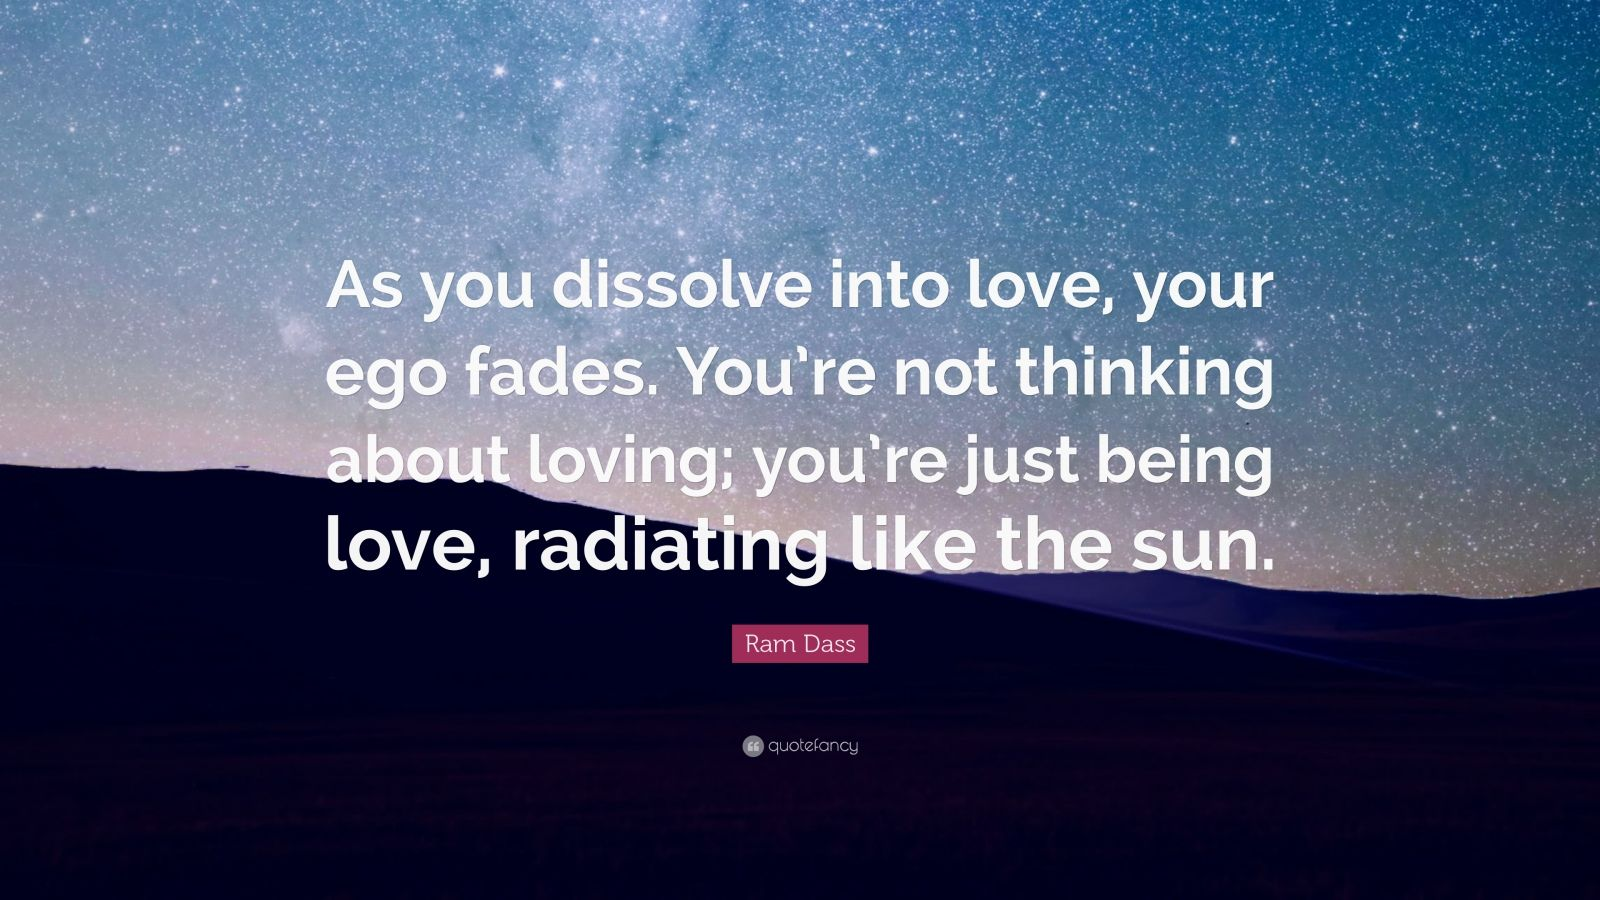 Zen Quote Wallpapers Ram Dass Quote As You Dissolve Into Love Your Ego Fades